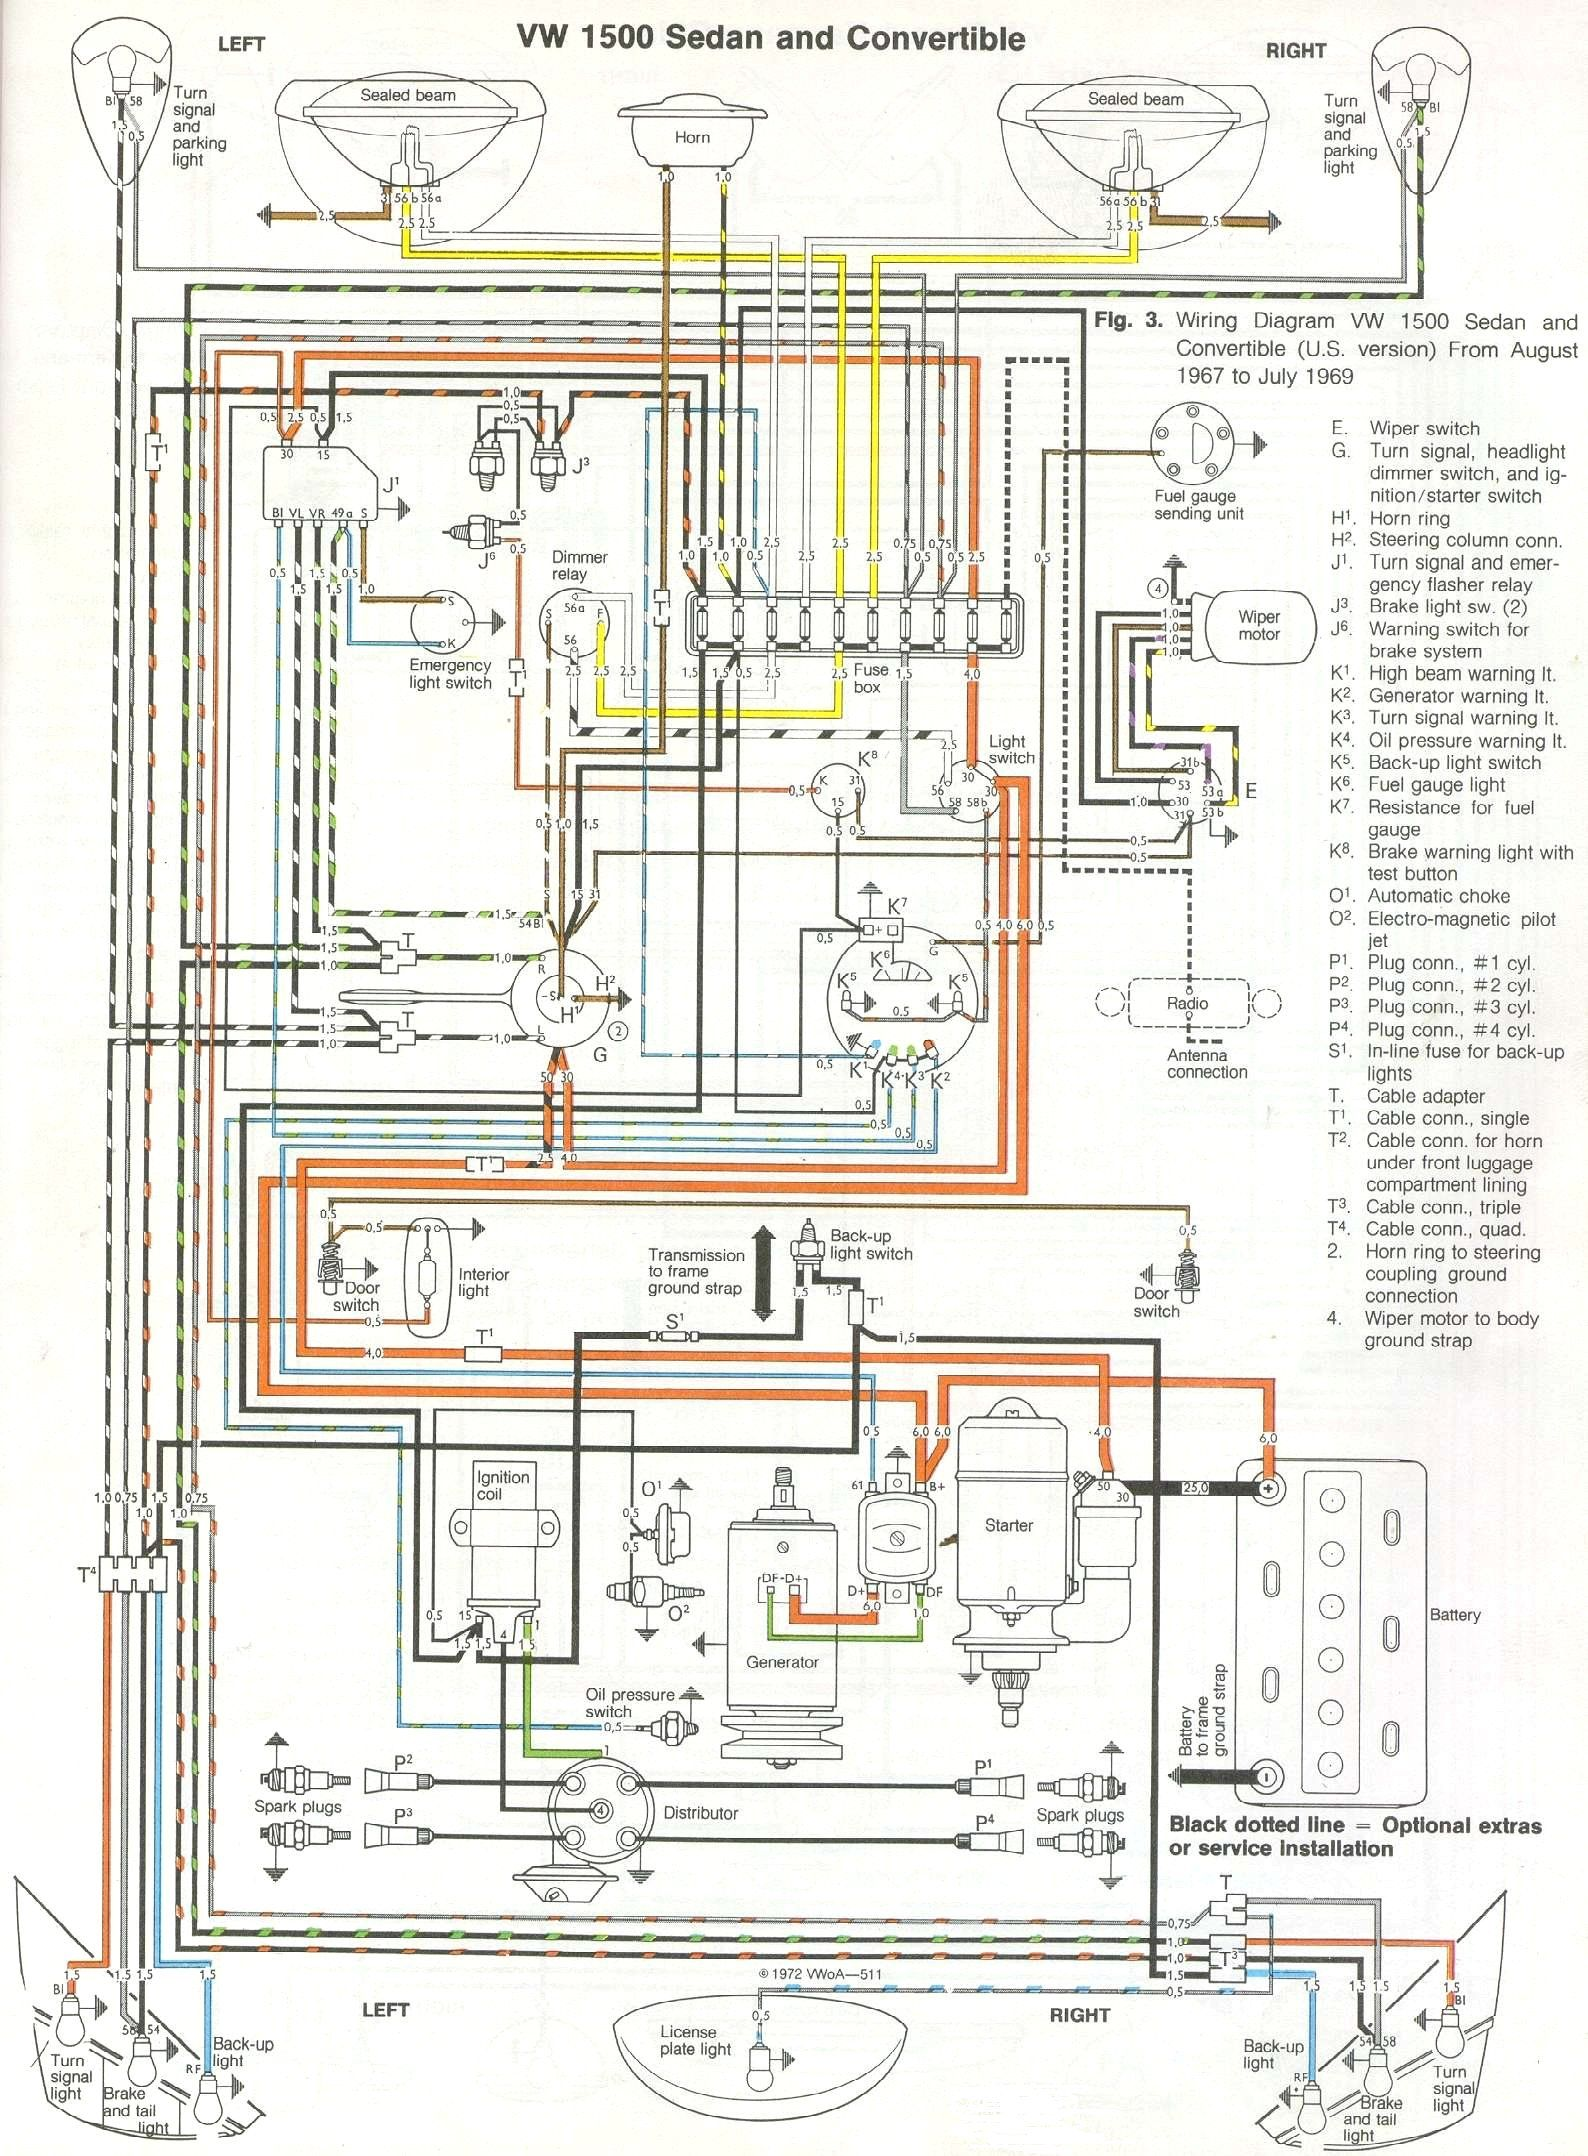 Vintage Vw Wiring Harness Layout Diagrams 0 5 Mustang Tach 1971 Bug U2022 Rh Laurafinlay Co Uk 1968 Beetle